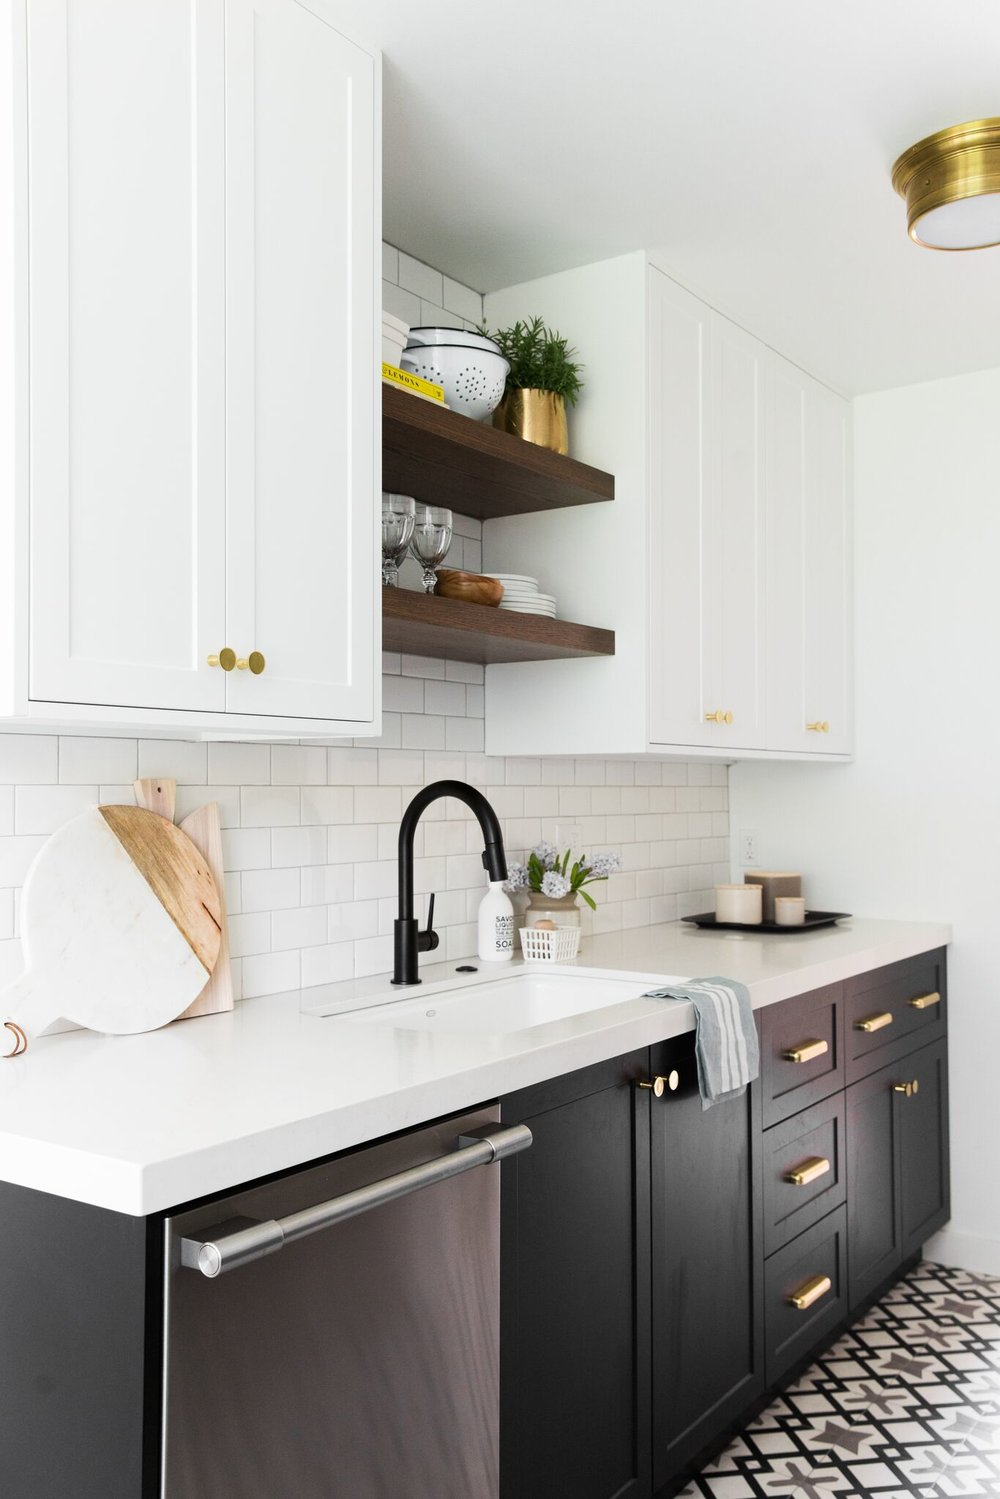 Hillside Kitchen Remodel Reveal — STUDIO MCGEE